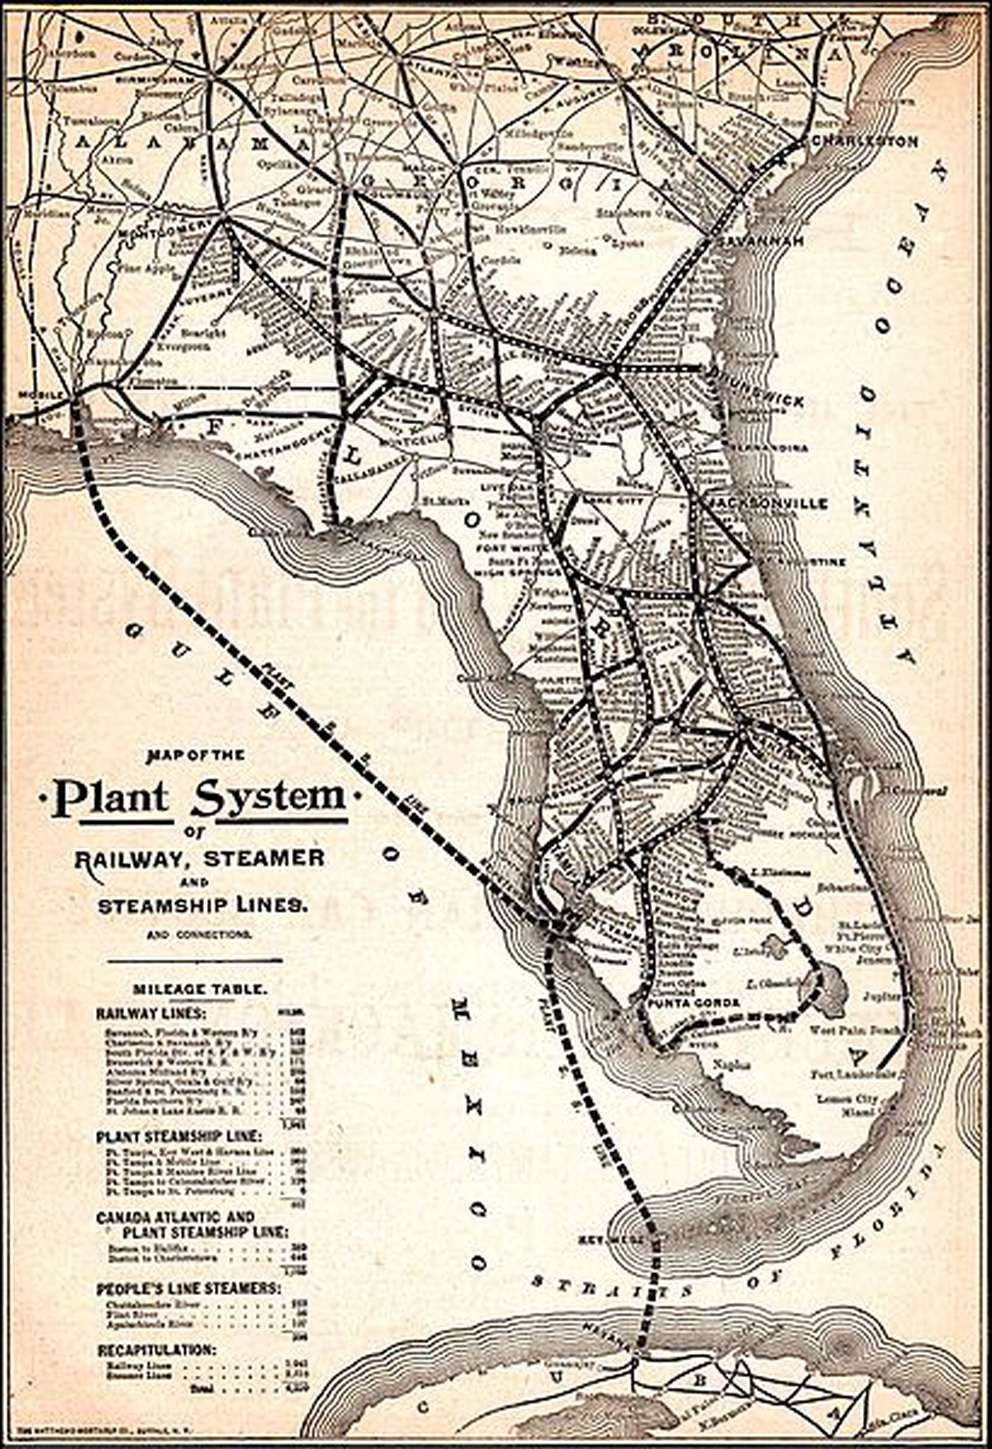 A map of Henry Plant's railroad and steamship lines from 1895. Map from Travelers' Official Guide of the Railway and Steam Navigation Lines 1895.